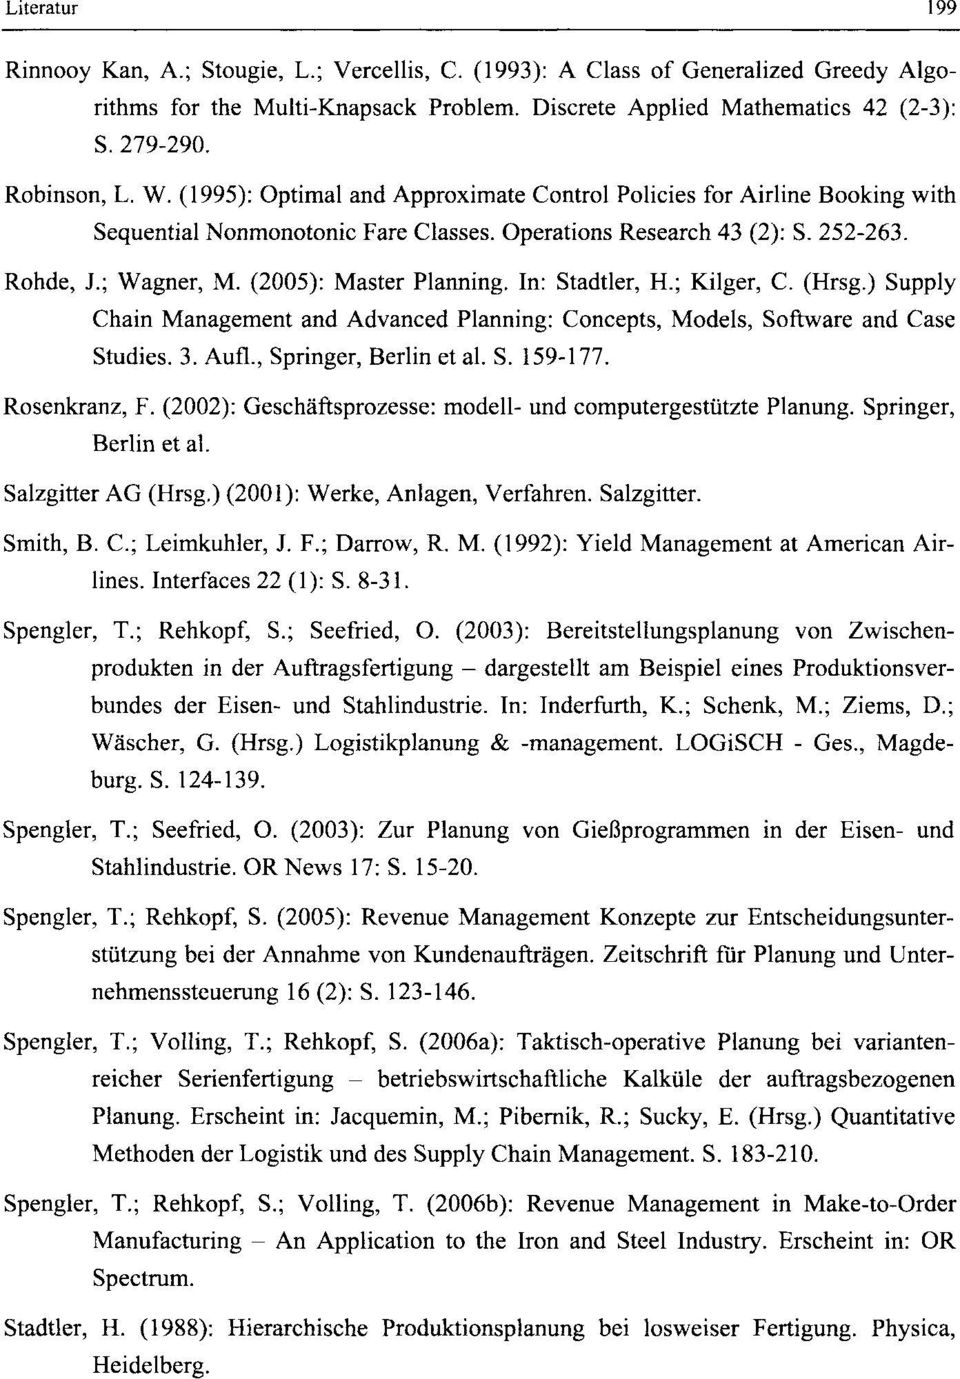 (2005): Master Planning. In: Stadtler, H.; Kilger, C. (Hrsg.) Supply Chain Management and Advanced Planning: Concepts, Models, Software and Case Studies. 3. Aufl., Springer, Berlin et al. S. 159-177.